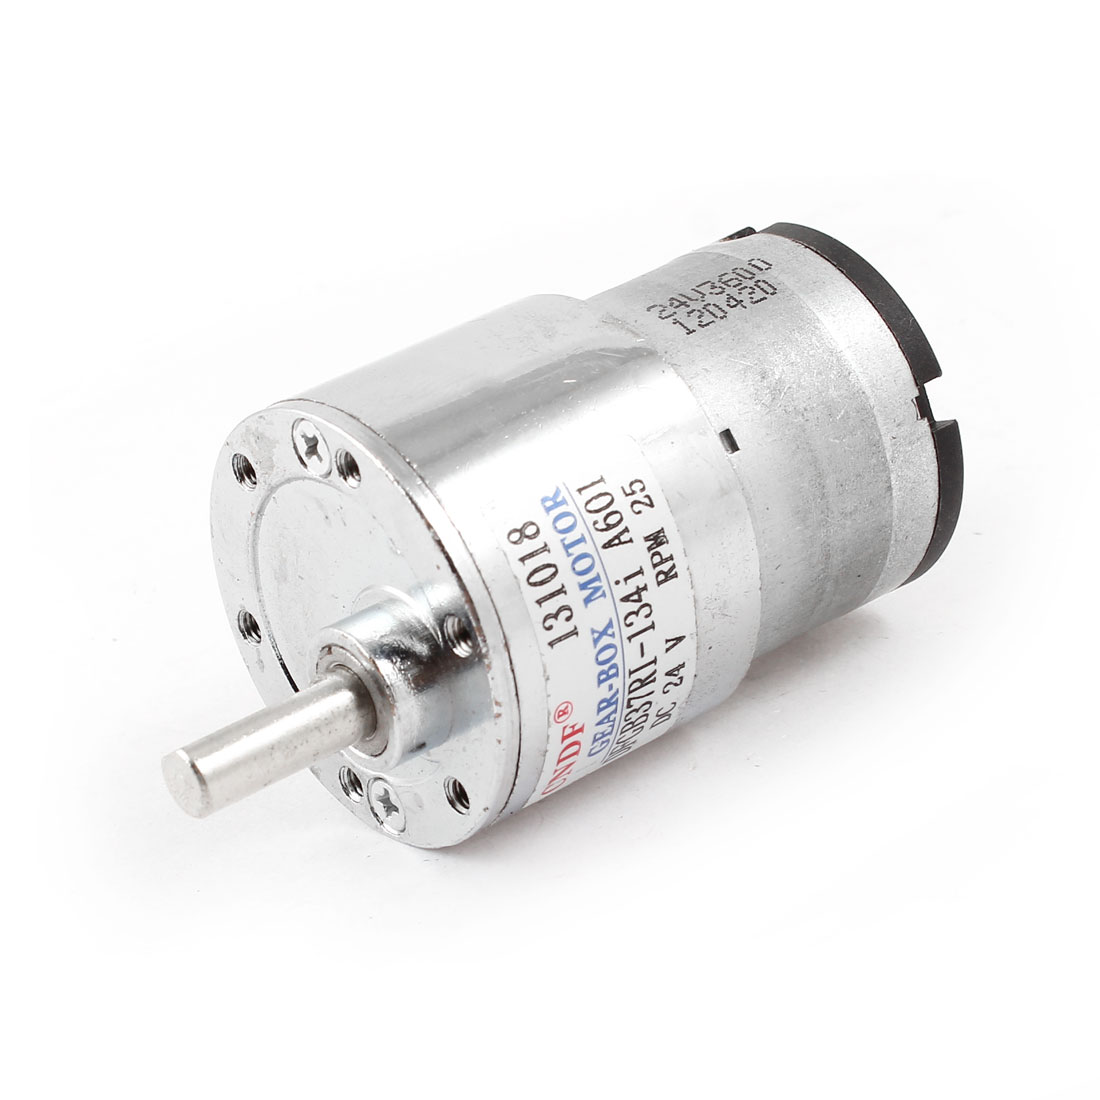 6mm Shaft 25RPM Output Speed 24V Reduce DC Magnetic Geared Motor